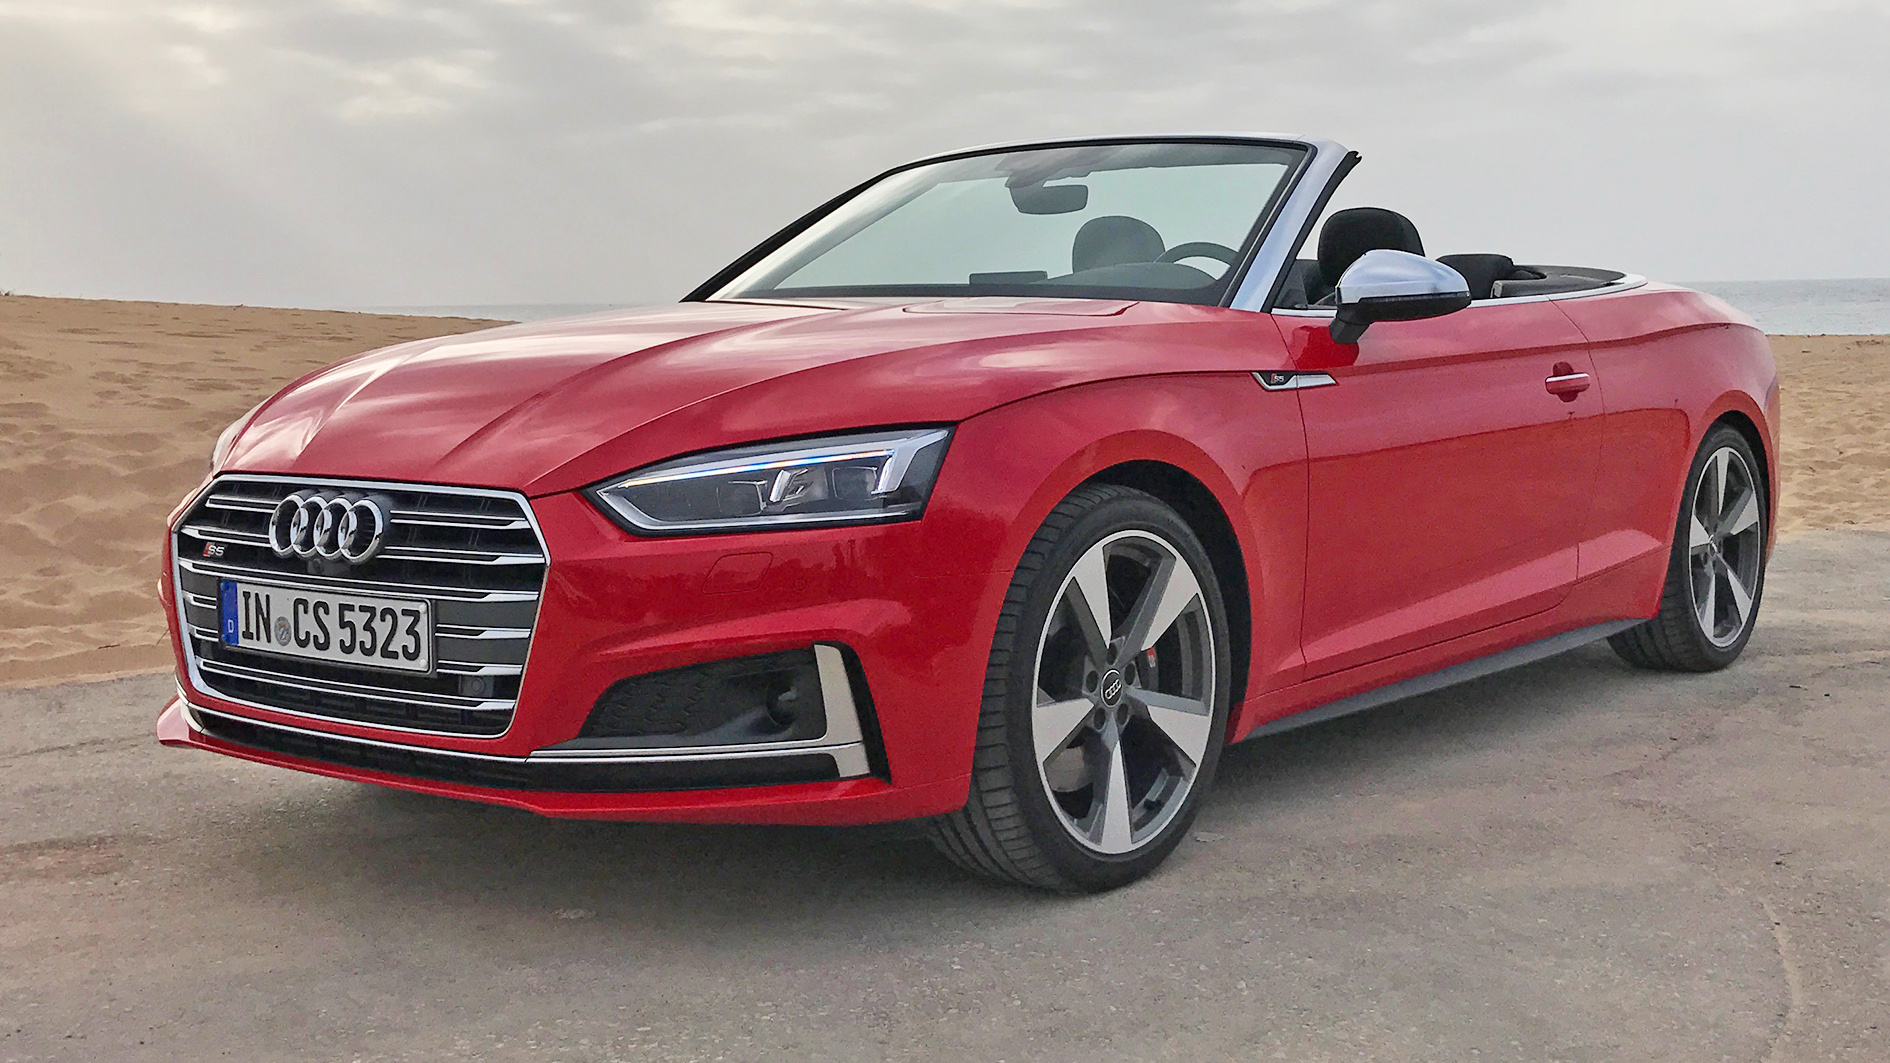 audi s5 cabrio review driving report 2017 audi a5 cabrio english. Black Bedroom Furniture Sets. Home Design Ideas